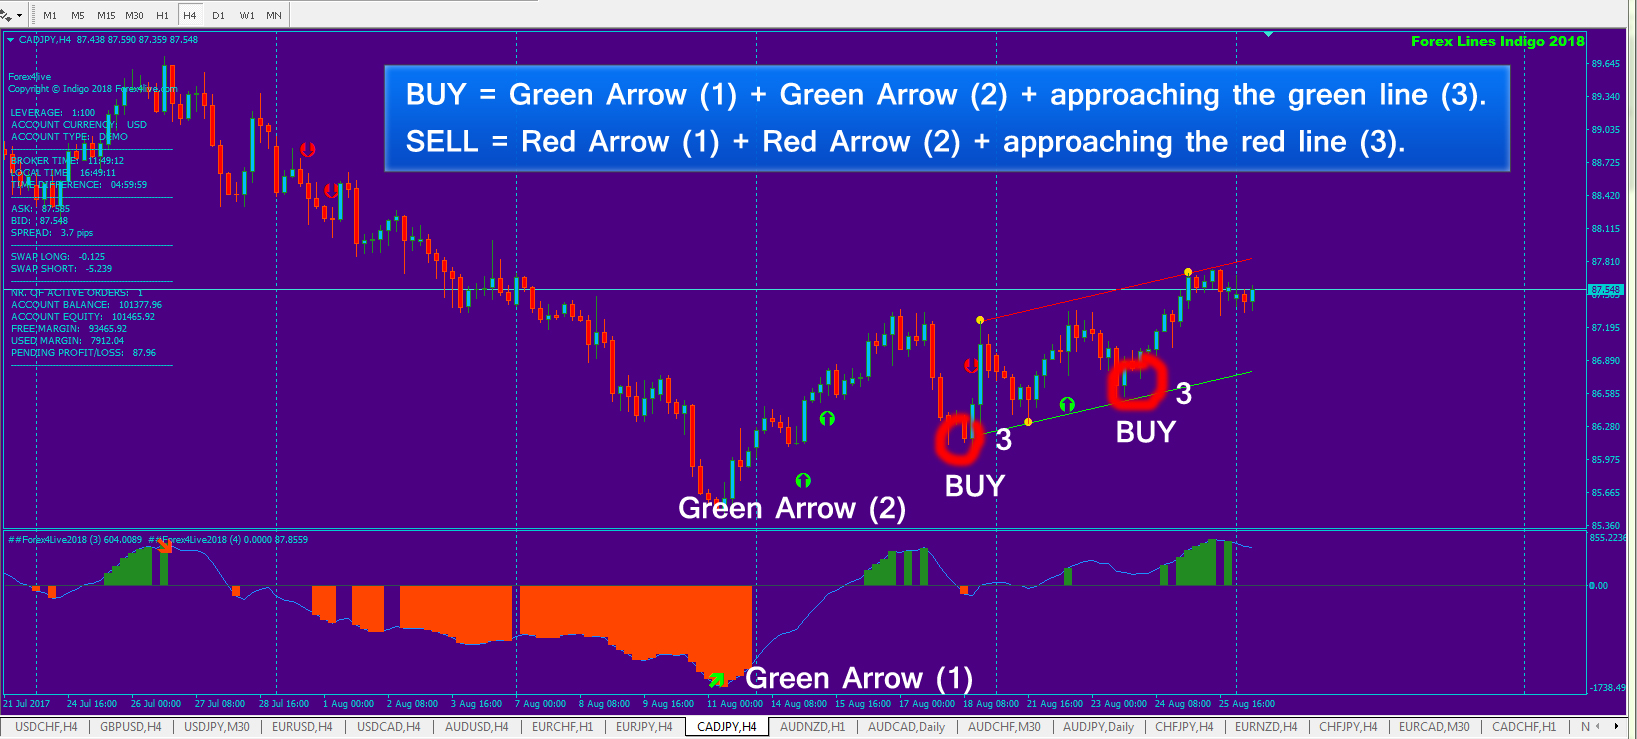 Forex indicator live strong buy